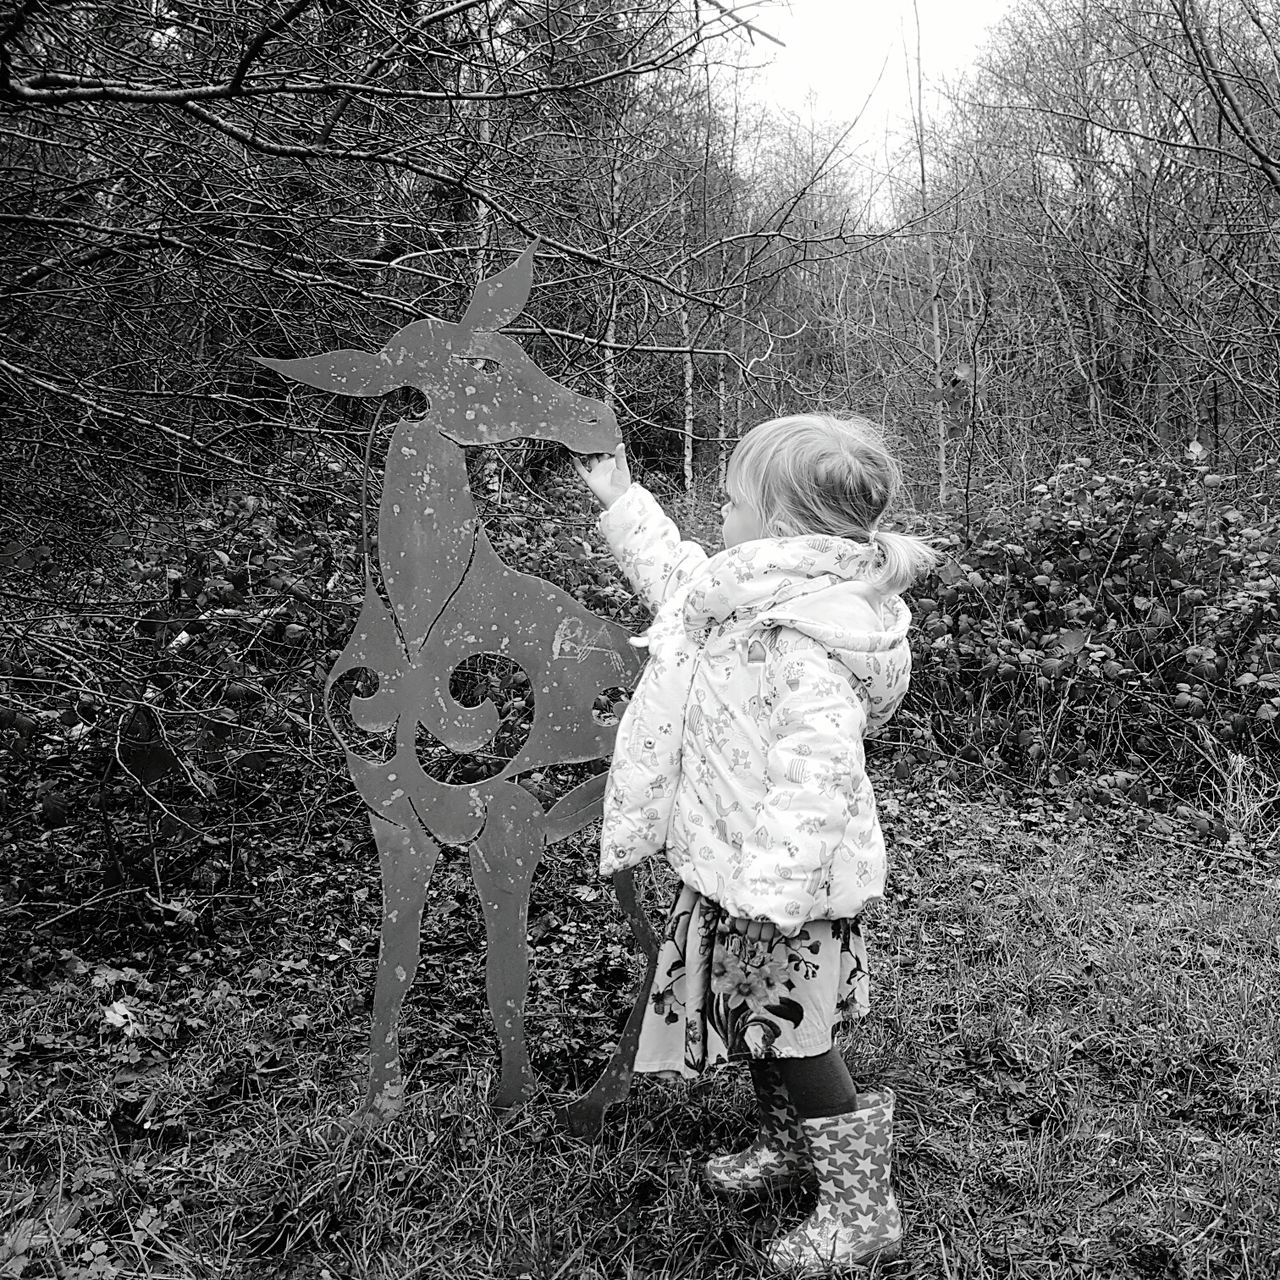 Emoting steel Childhood One Person Child Outdoors Nature Toddlers  Toddler  Countryside One Girl Only Deer Statue ArtWork Metal Steel Pressed Metal Countryside Uk Nature